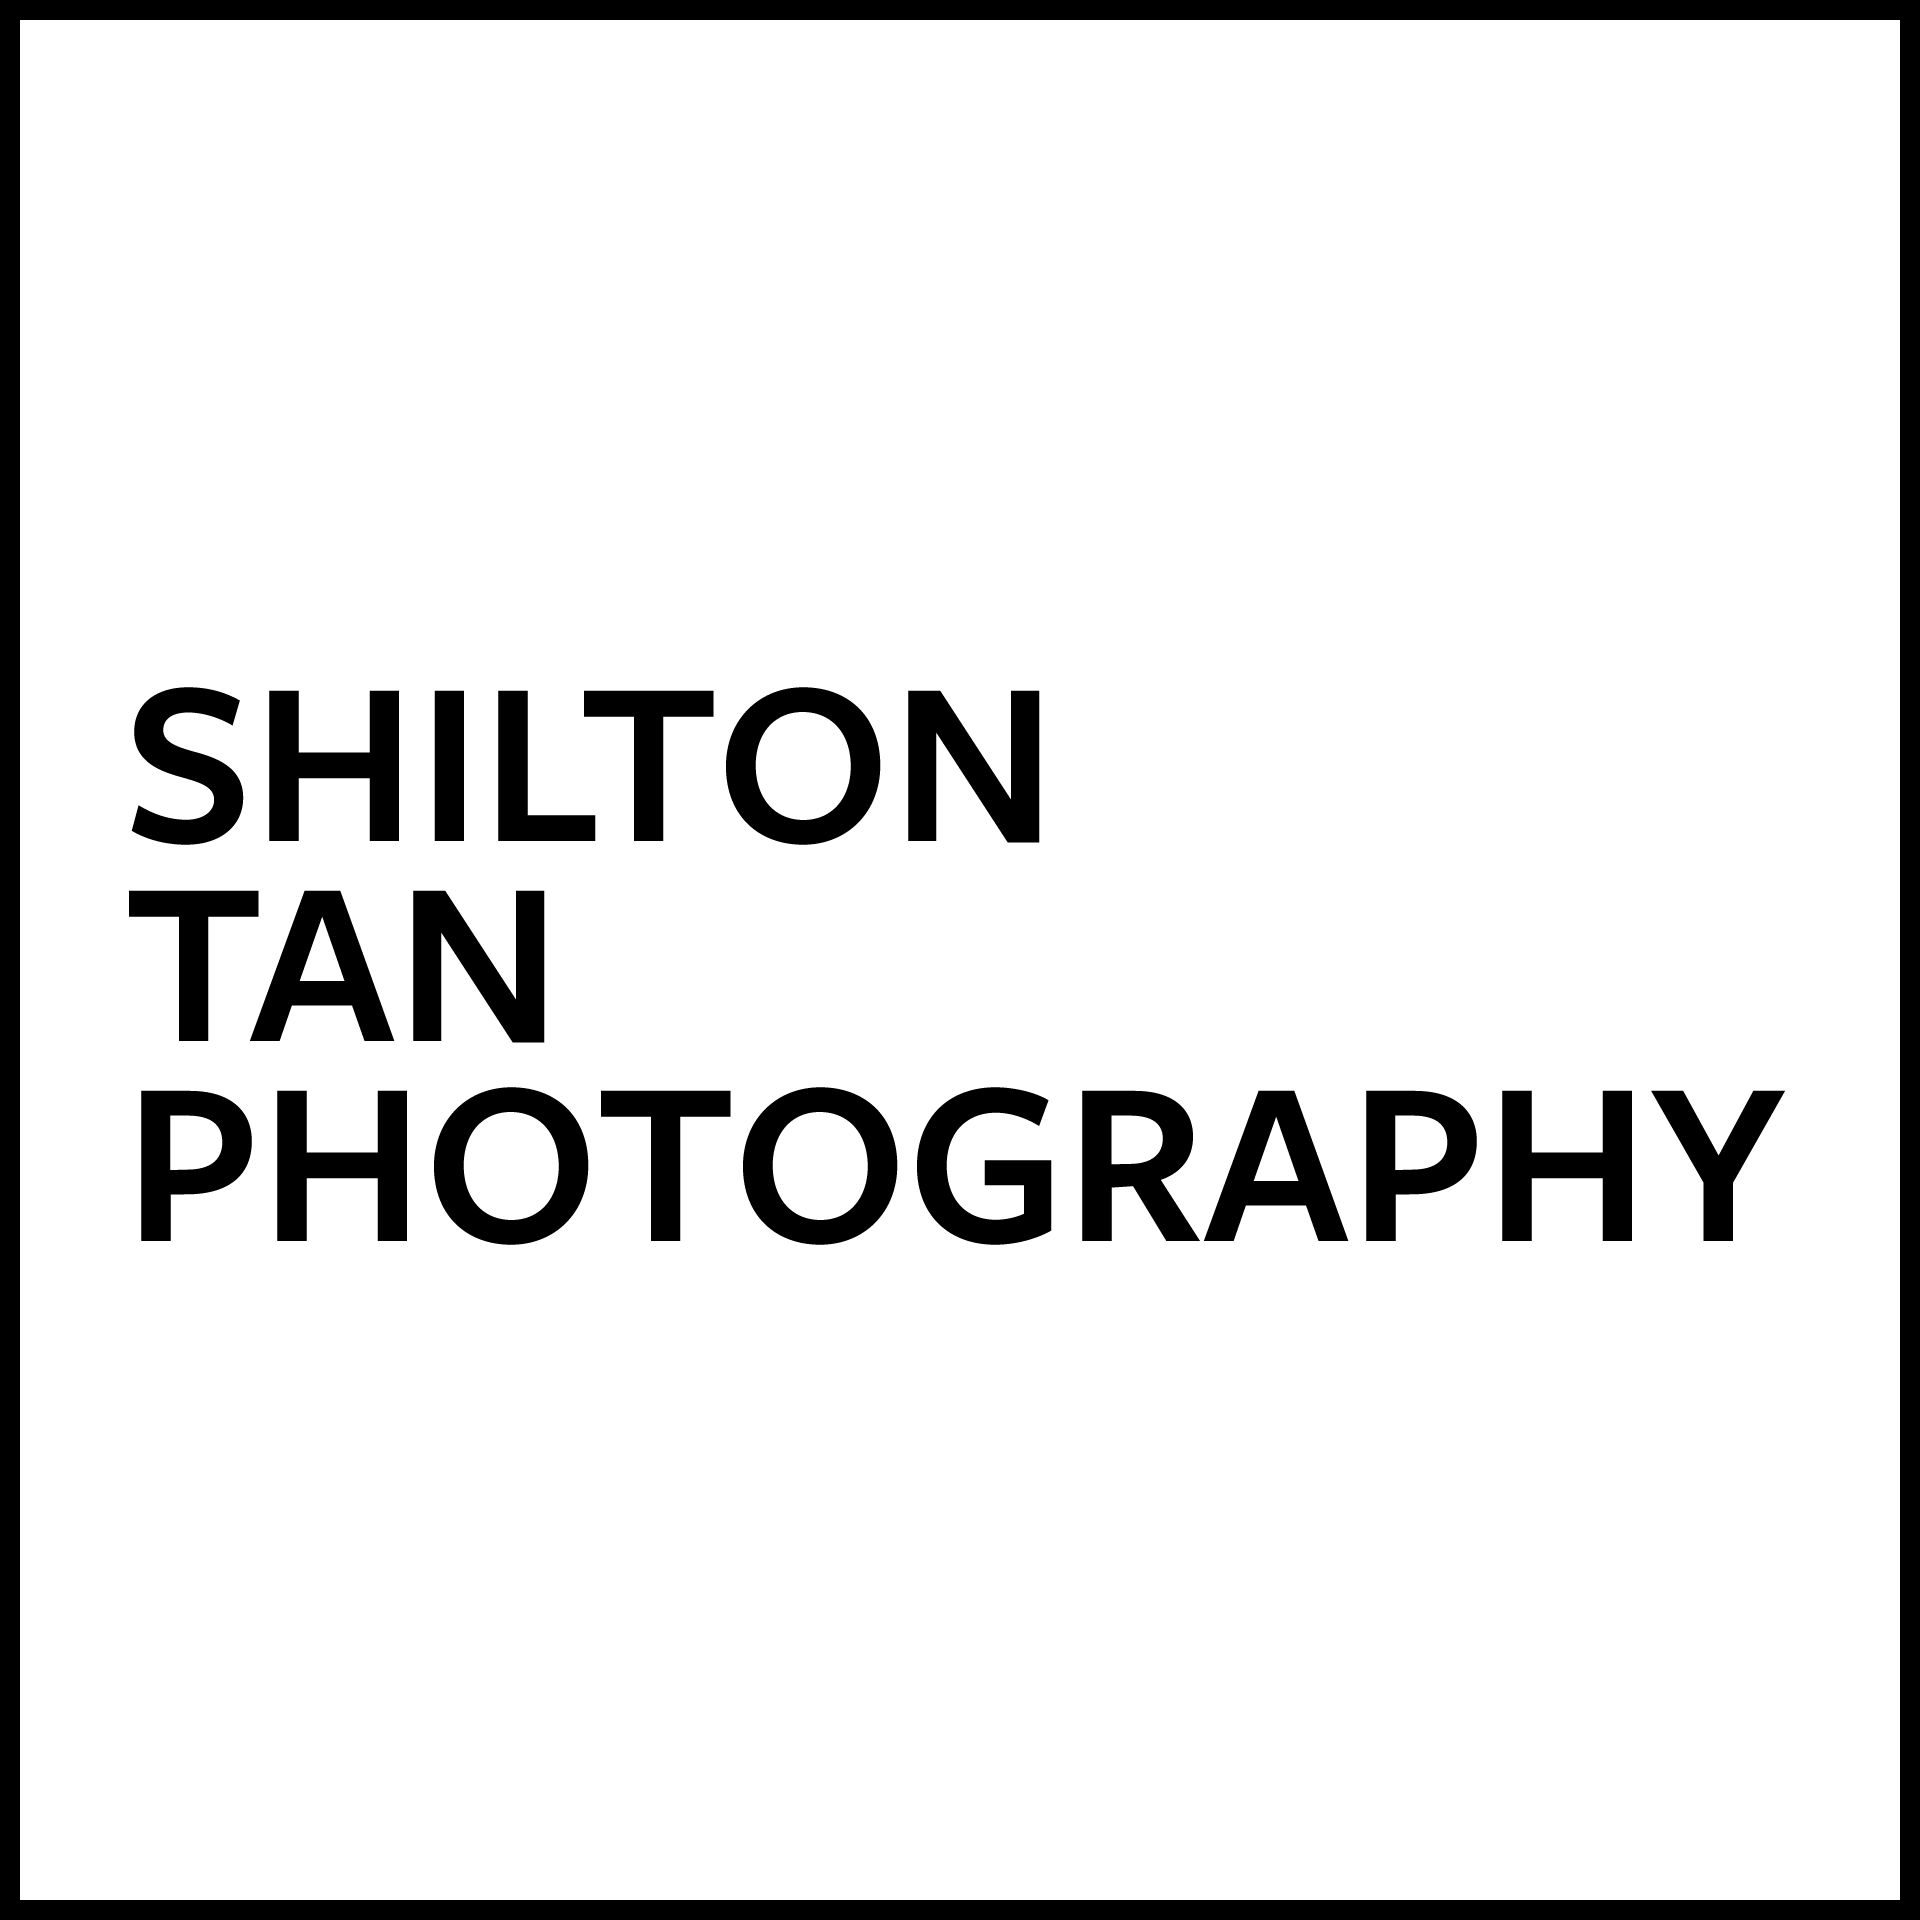 The logo of Shilton Tan Photography.